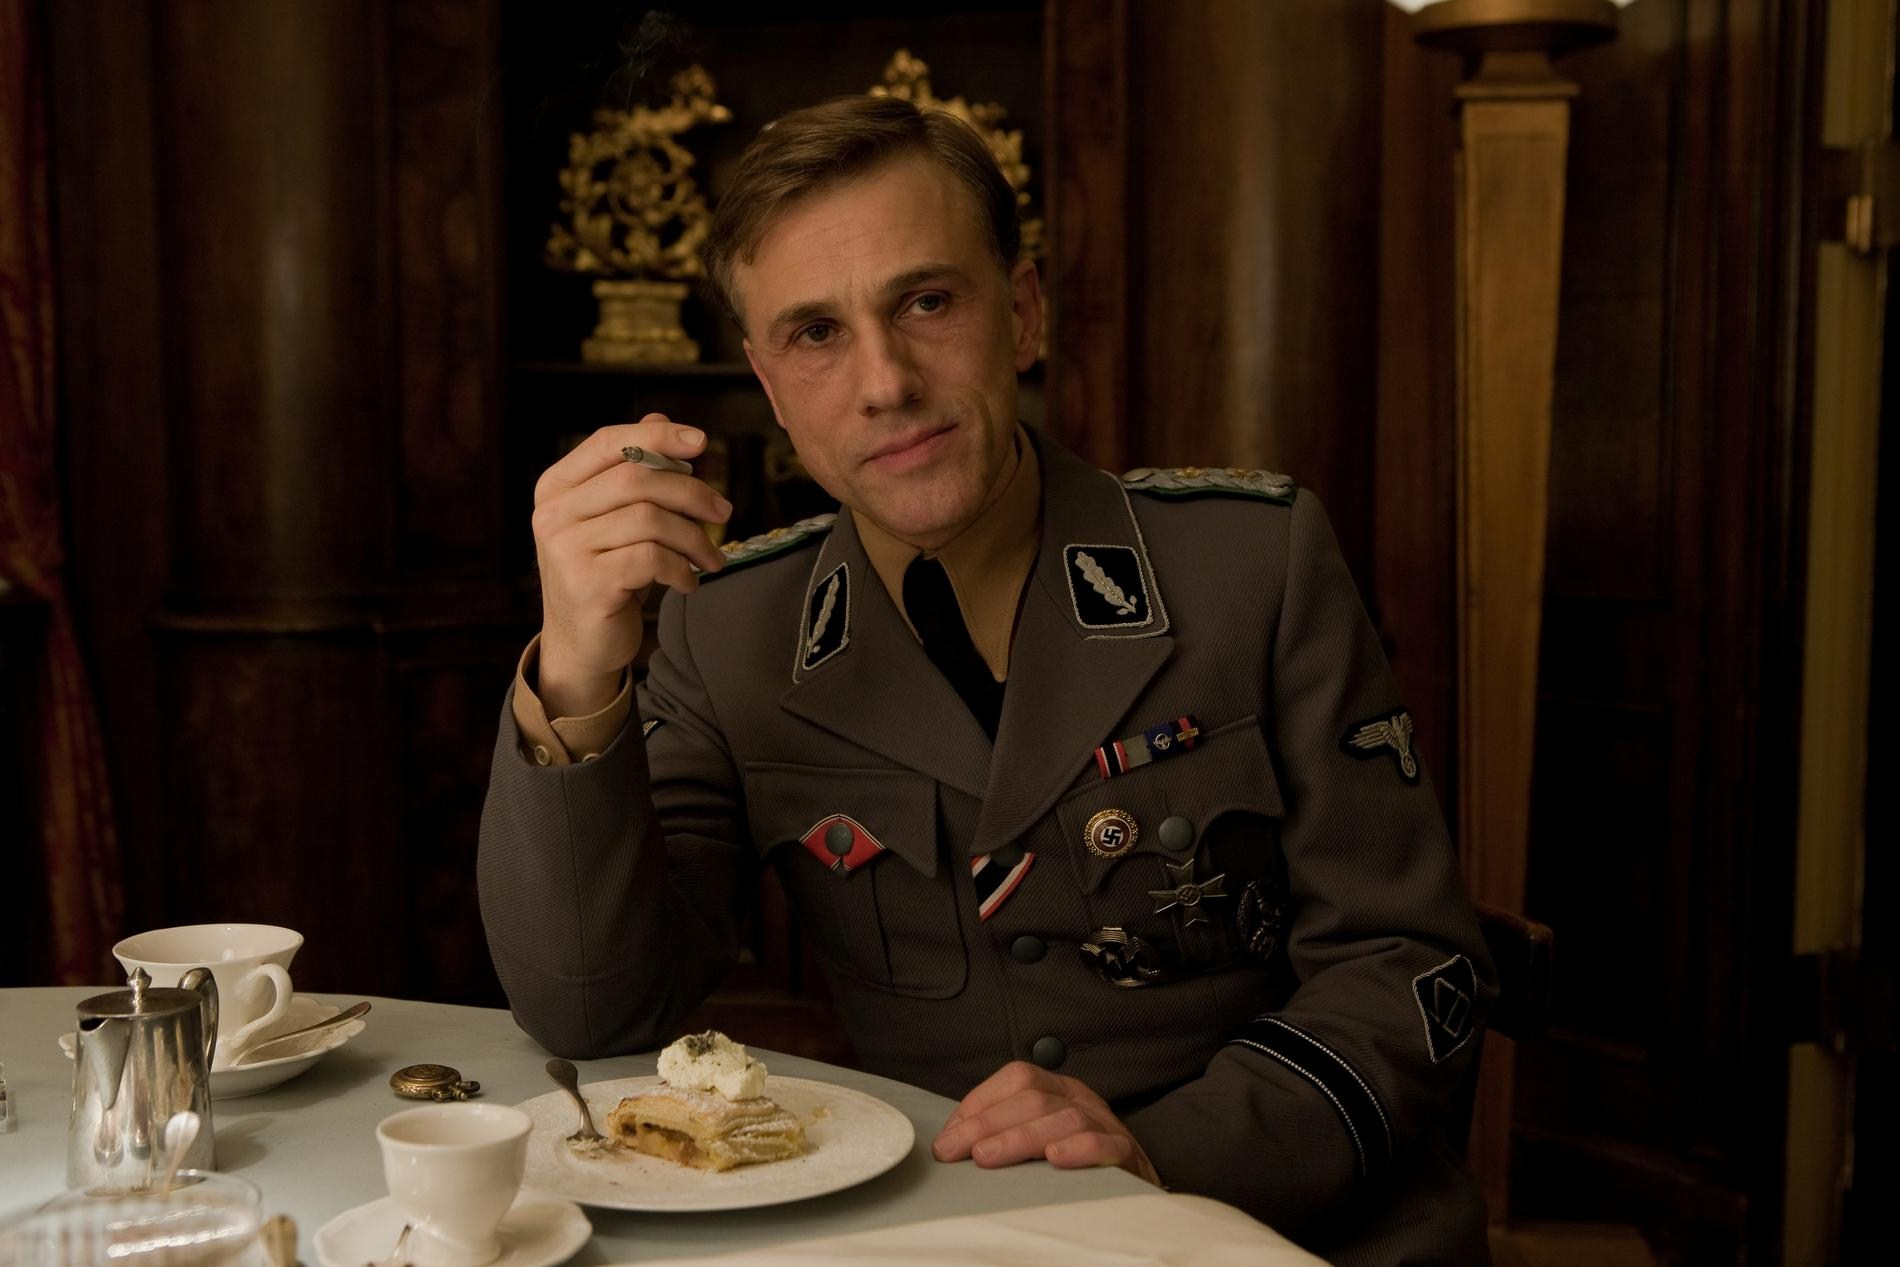 christoph waltz actor wallpaper 57154